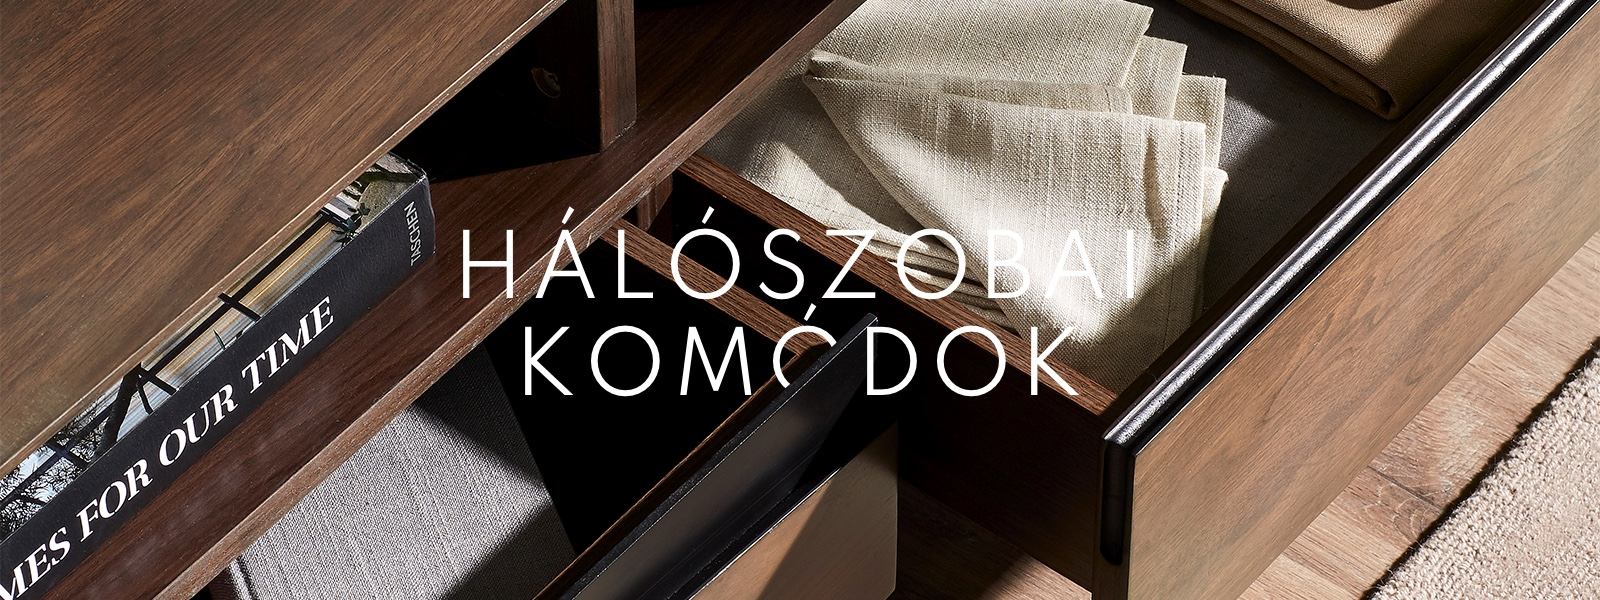 innoshop-haloszobai-komodok-bedroom-sideboards.jpg